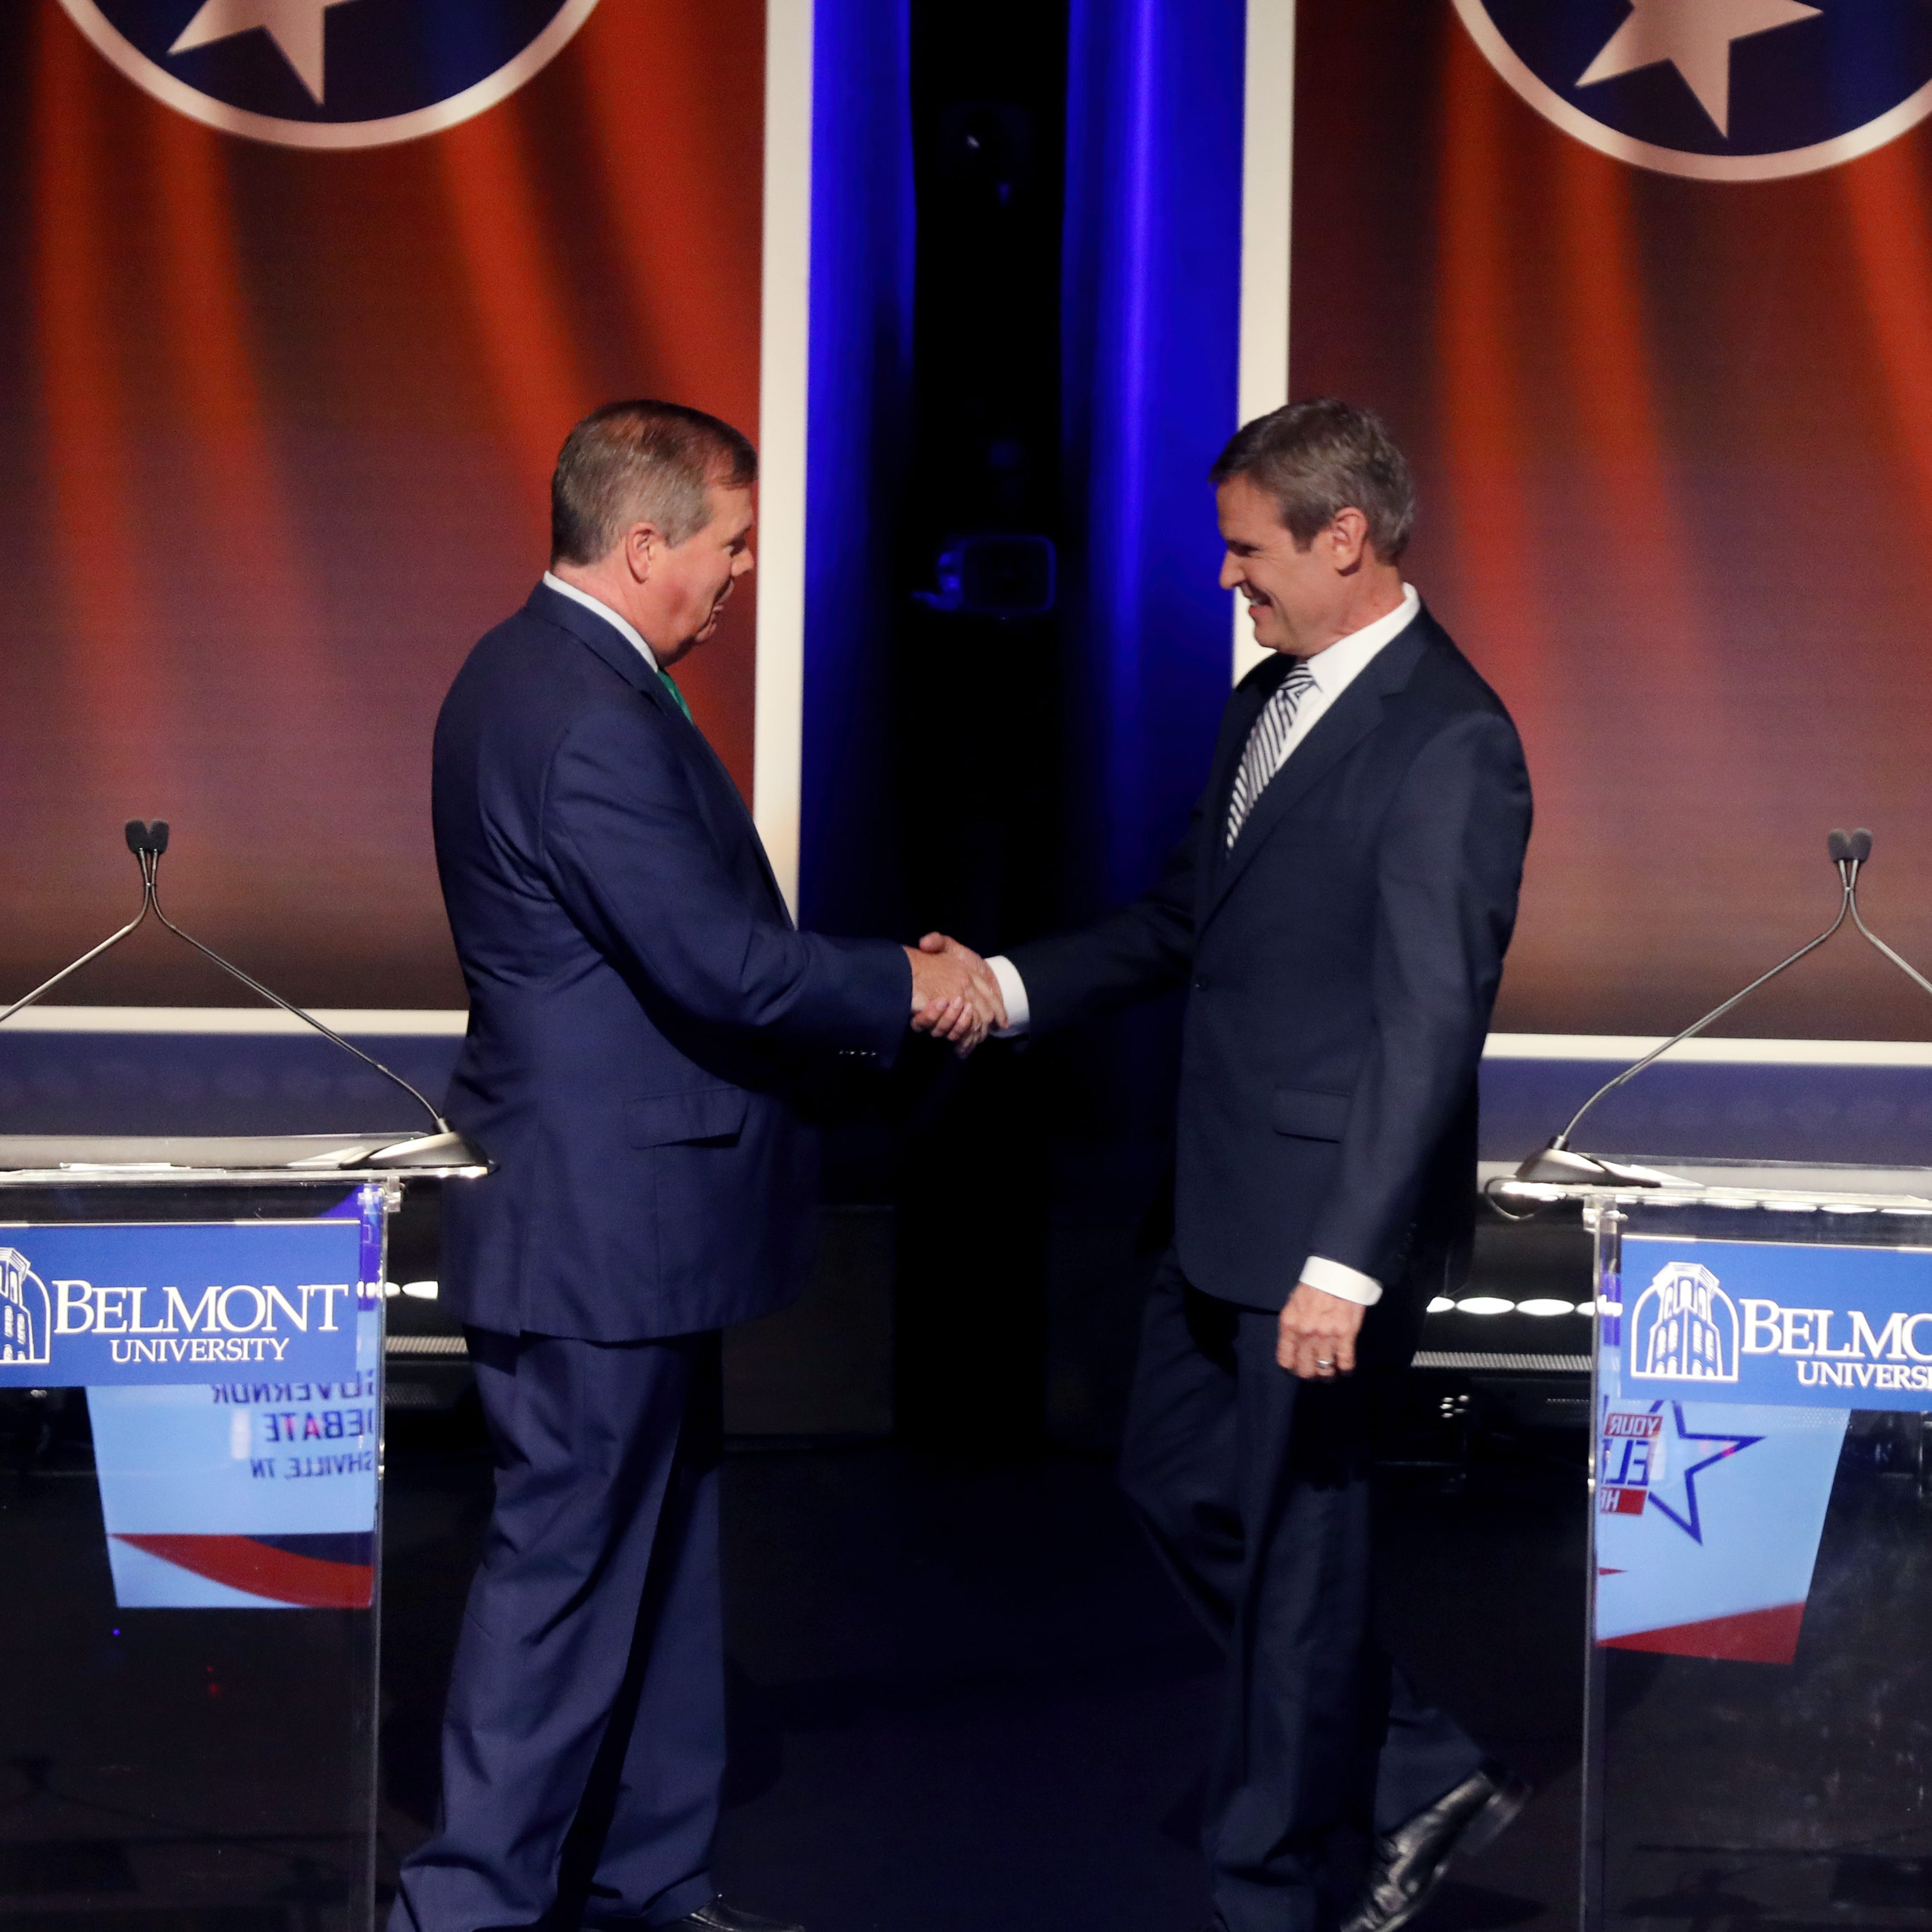 Bill Lee and Karl Dean: How their faiths could play a role in how they would lead as governor